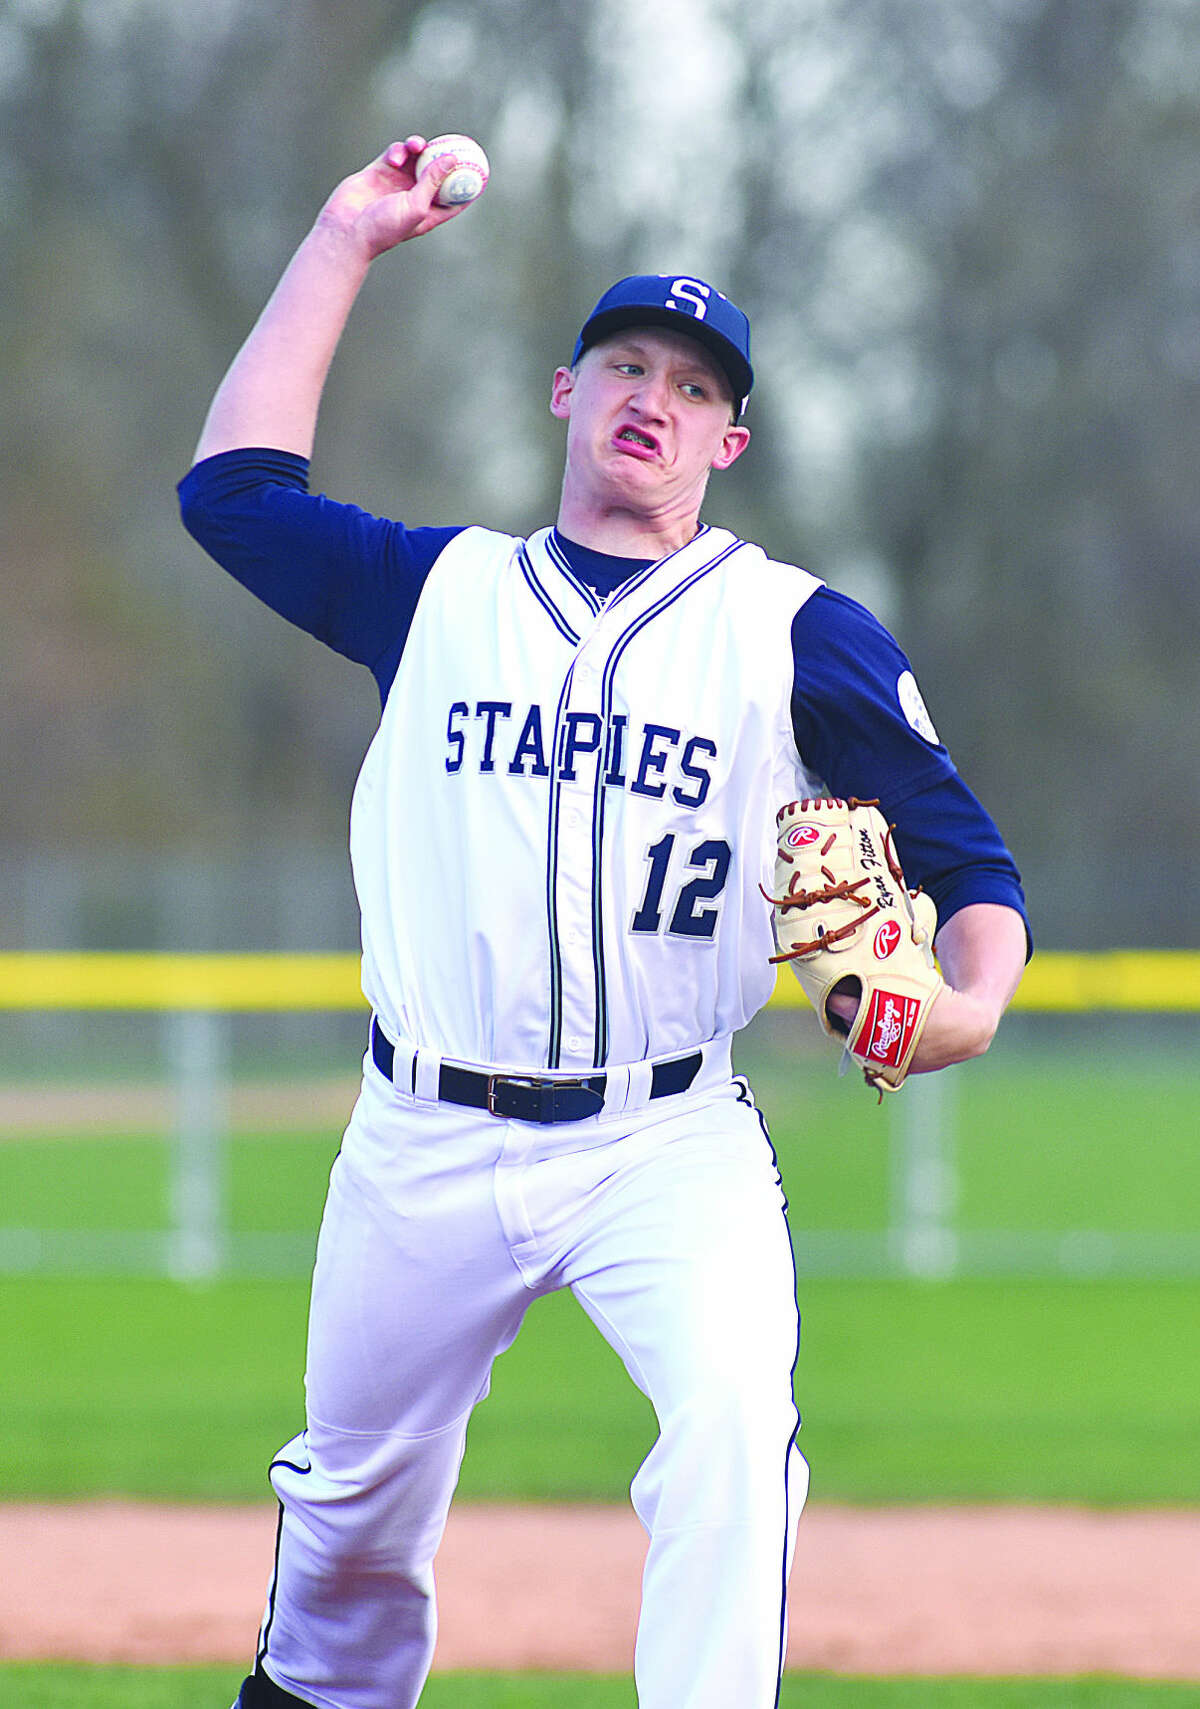 Staples' pitcher Ryan Fitton is 6-2 on the season with seven complete games and threw a no-hitter against Greenwich in just his third varsity game. (Hour photo/John Nash)